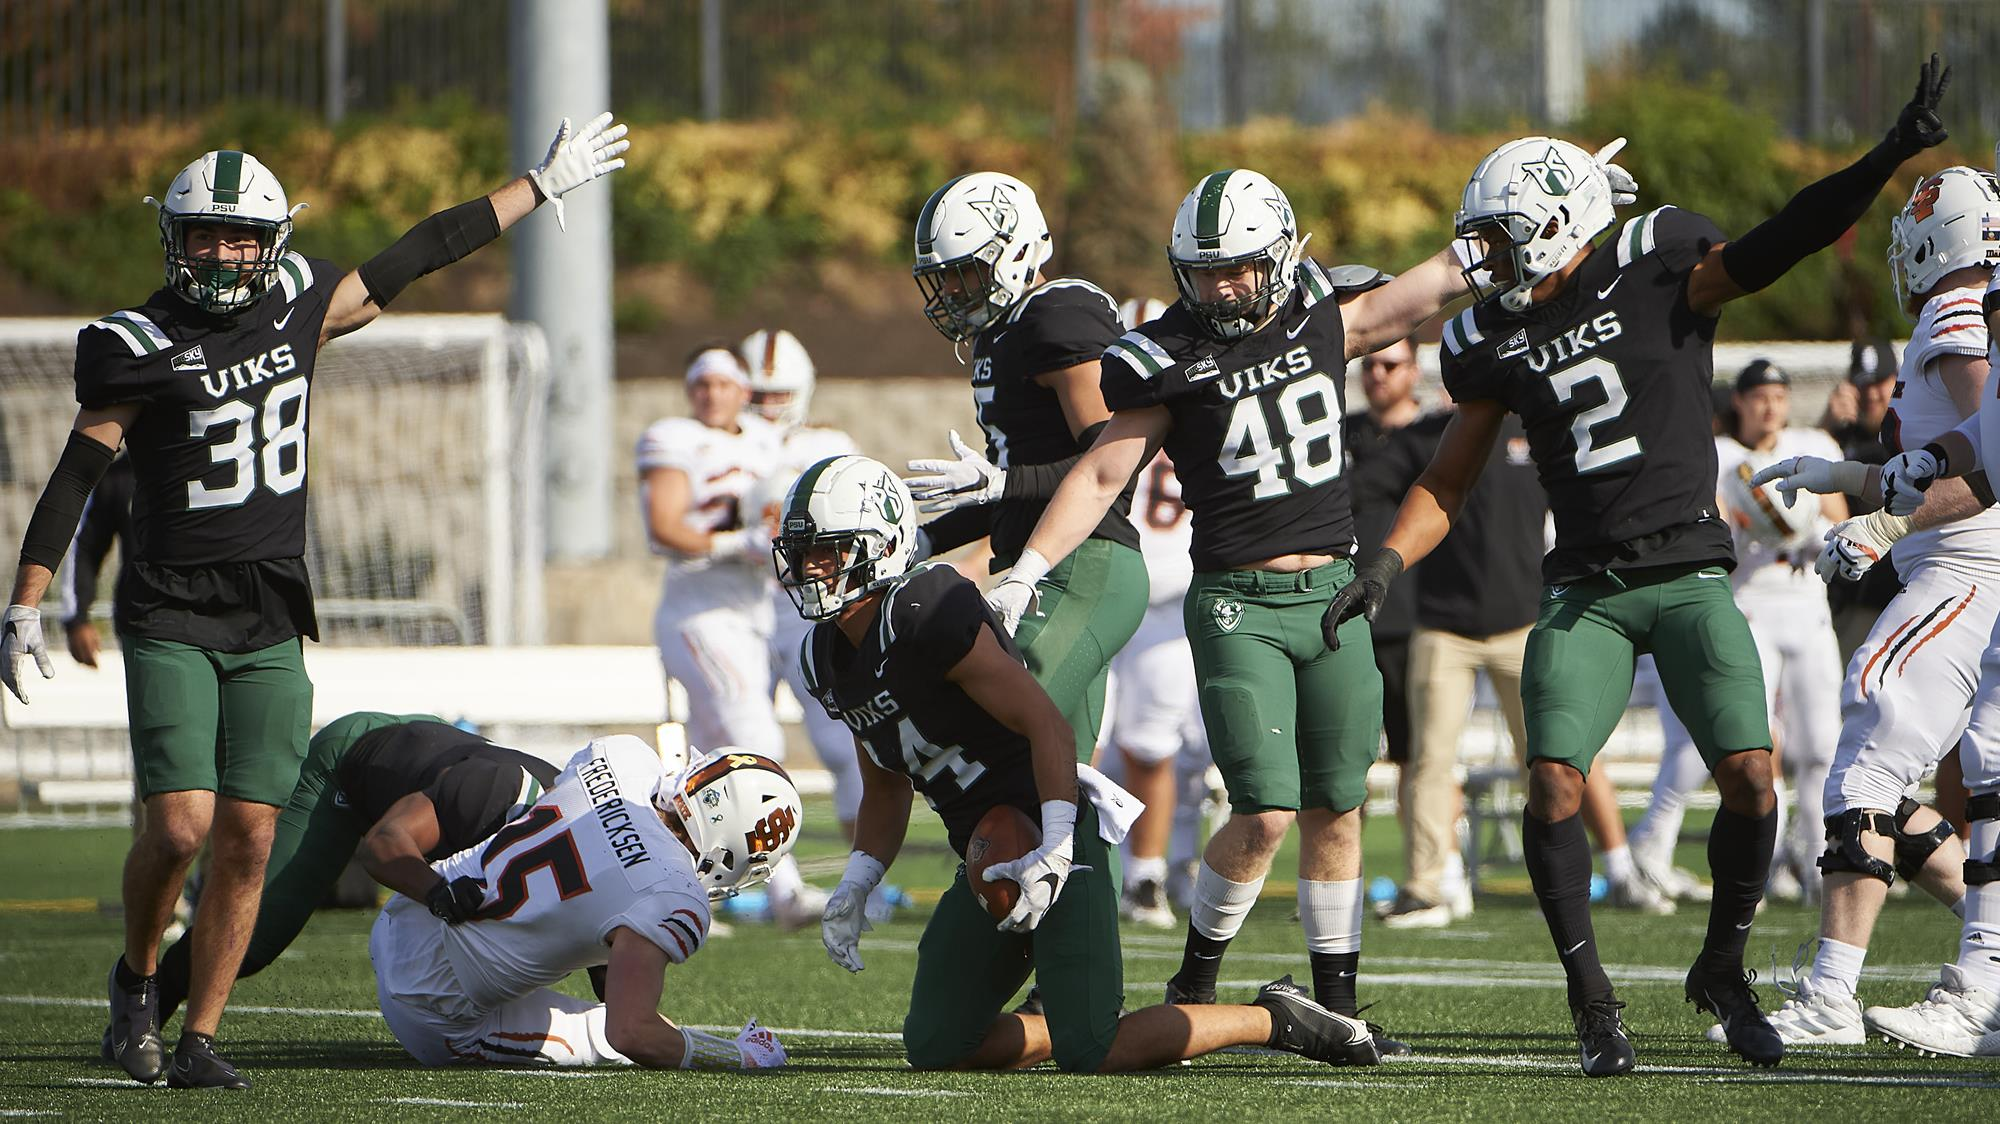 Anthony Adam recovers a fumble against Idaho State